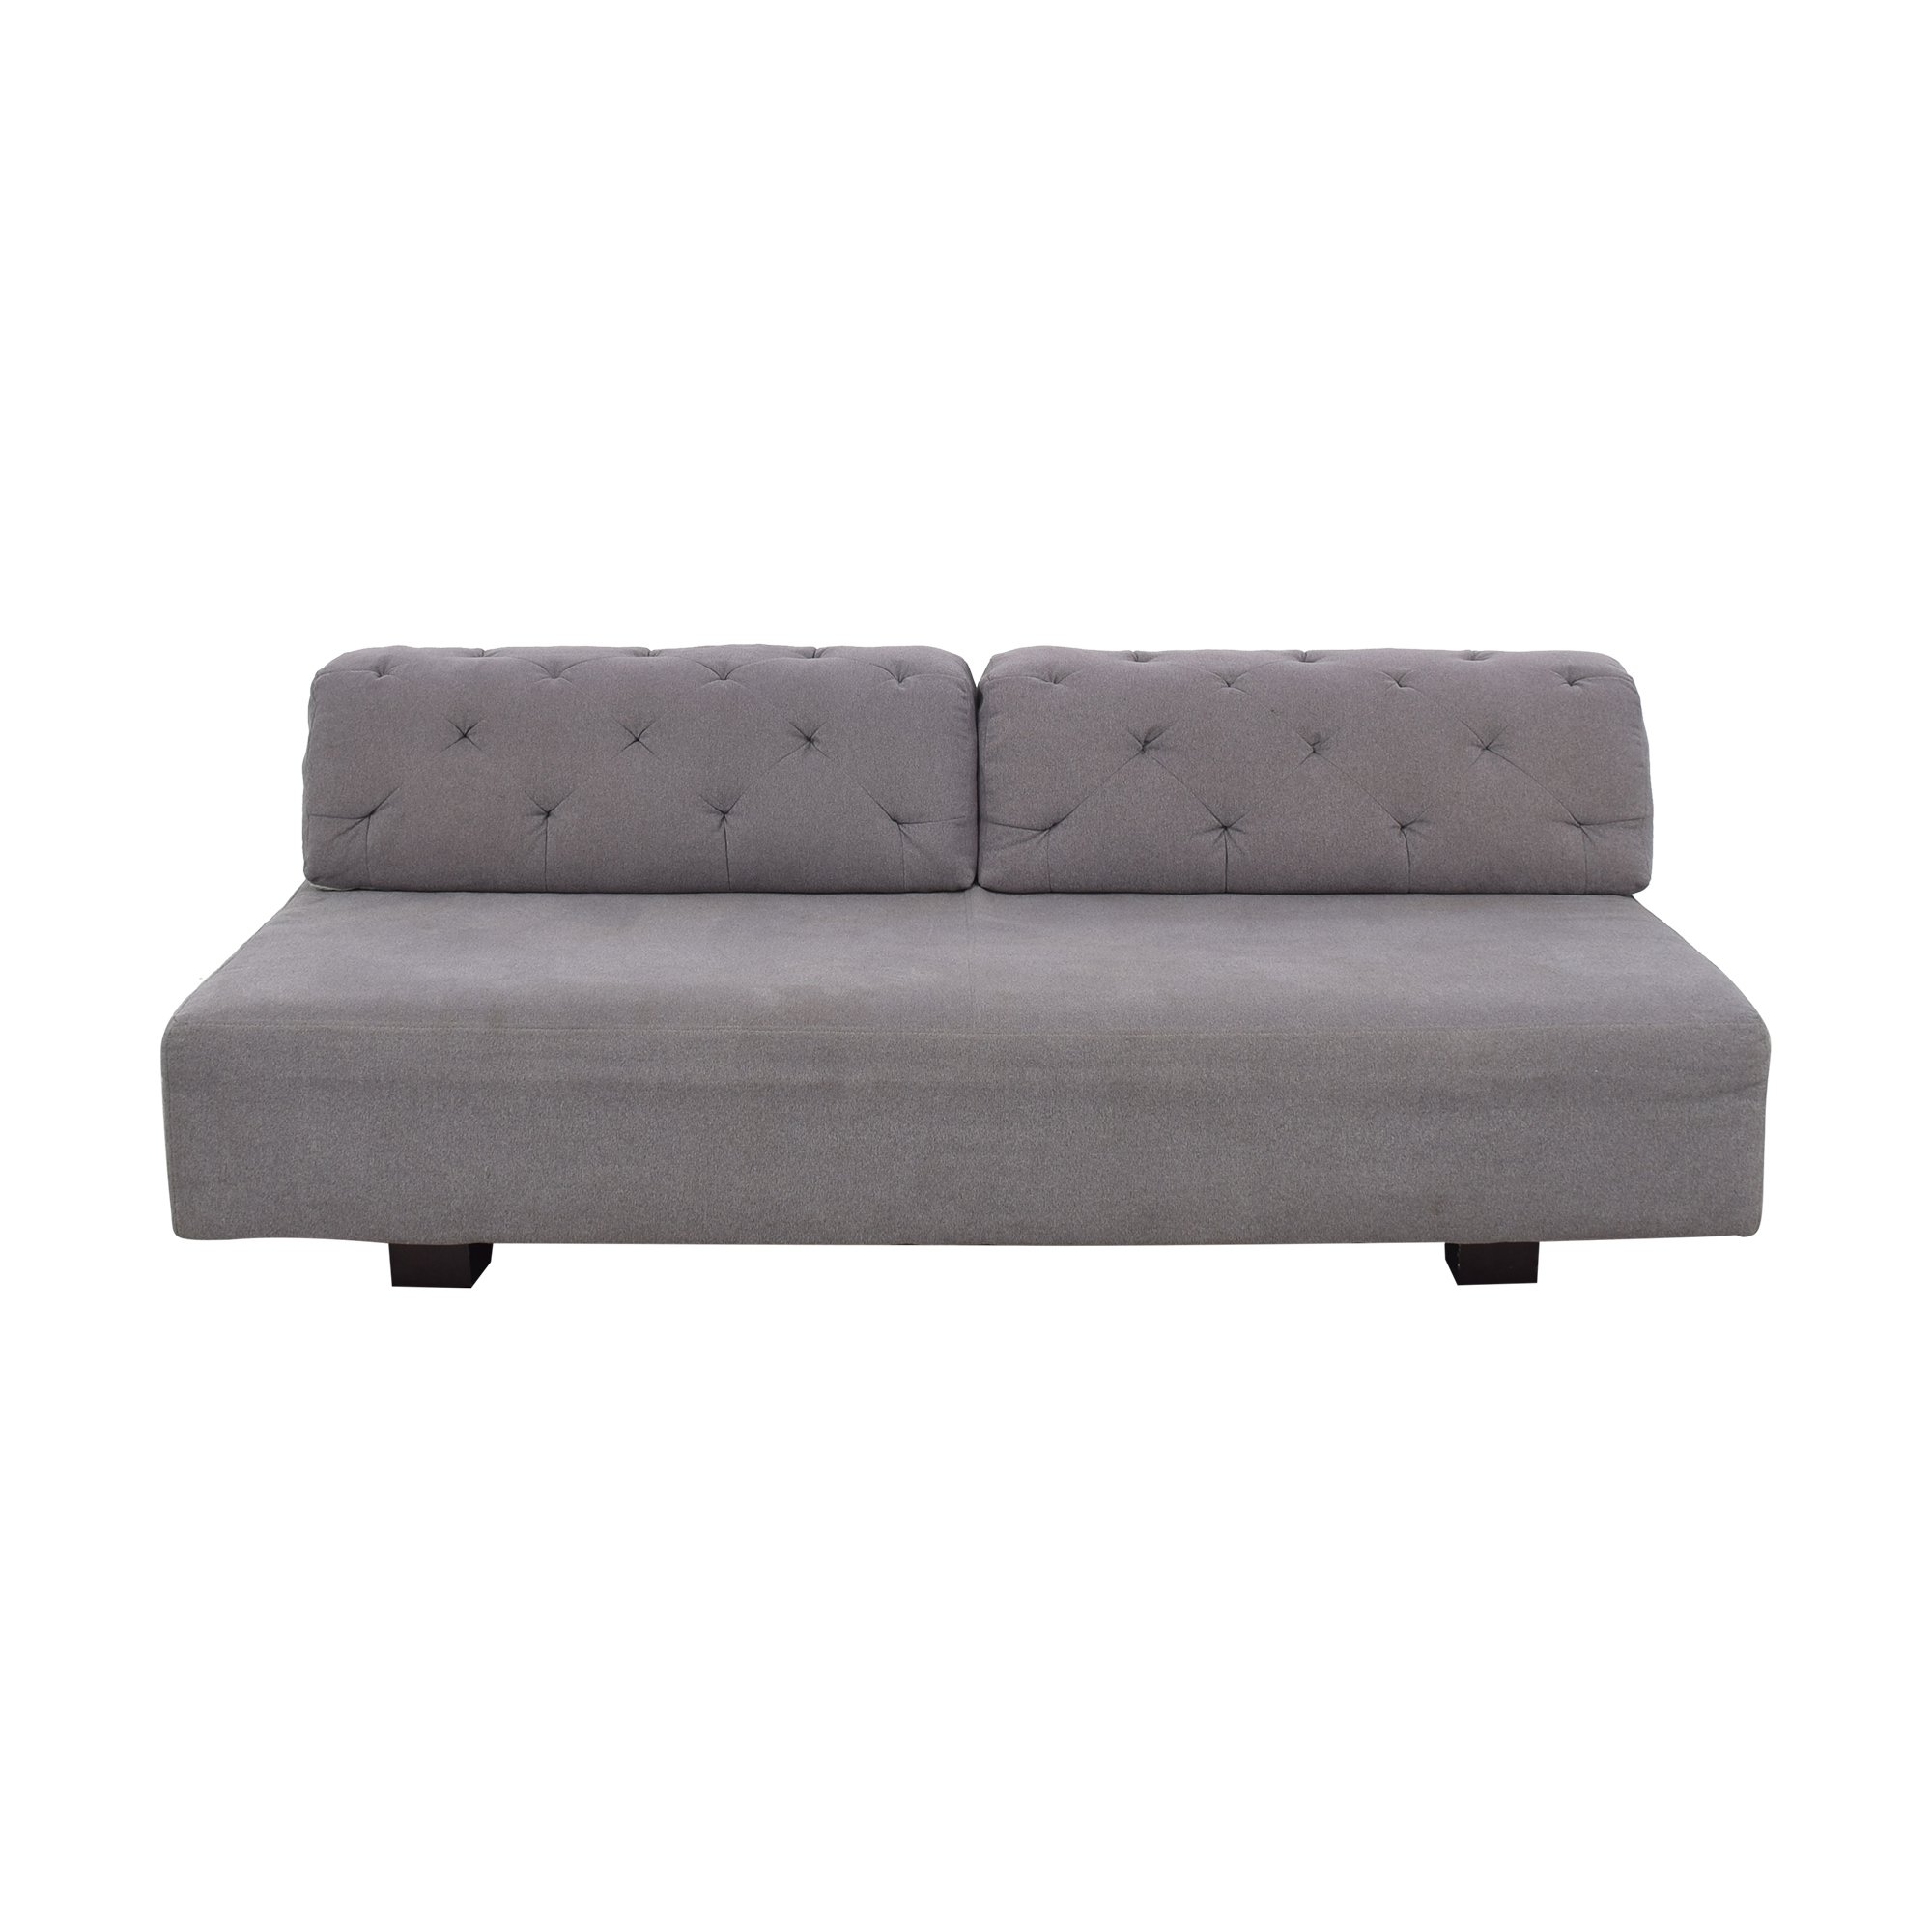 West Elm West Elm Tillary Sofa with Tufted Back Cushions used